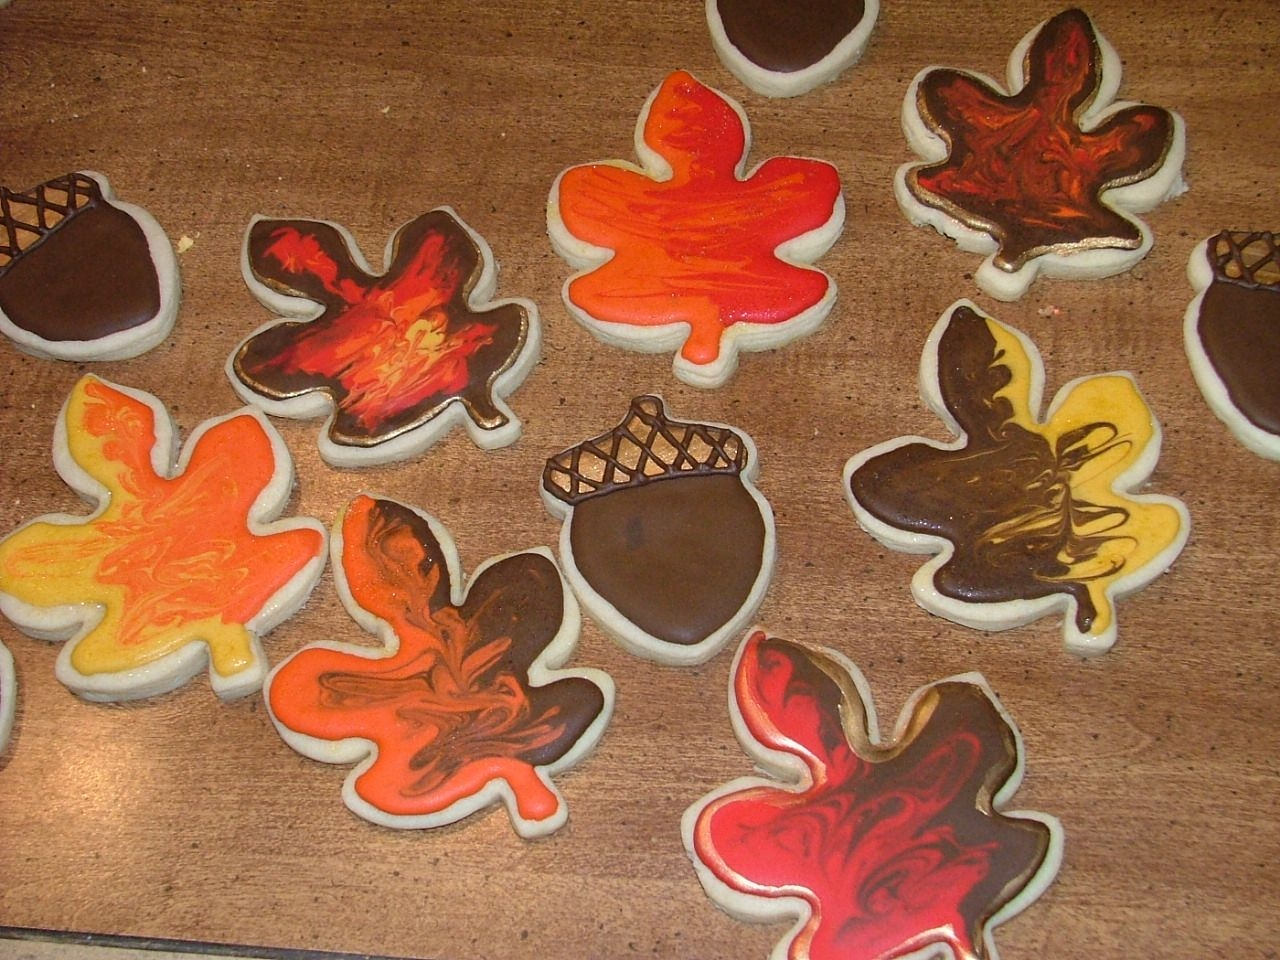 Fall Cookies NFSC with Royal and luster dust.